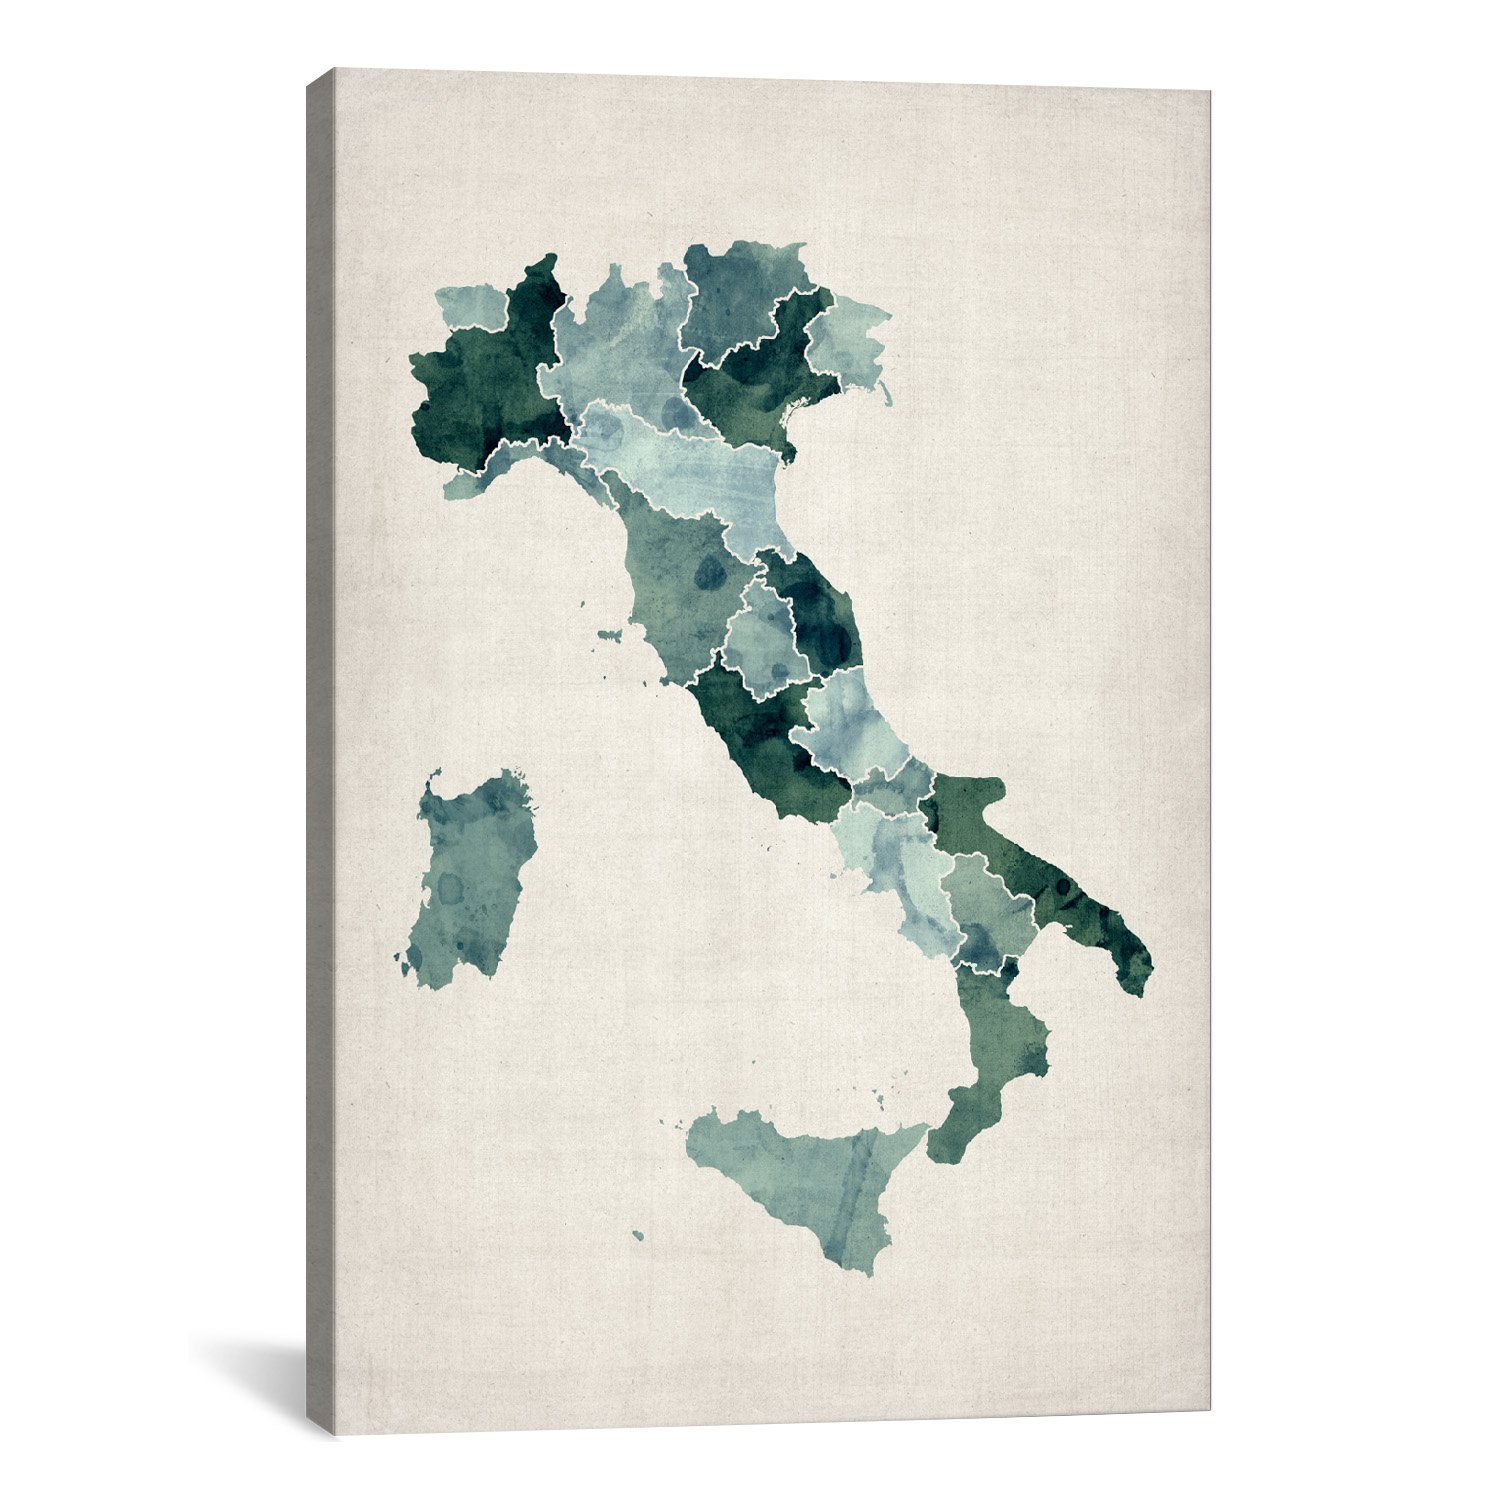 Icanvasart Watercolor Map Of Italy By Michael Tompsett Canvas Print 12856 40 X26 75 Inch Deep